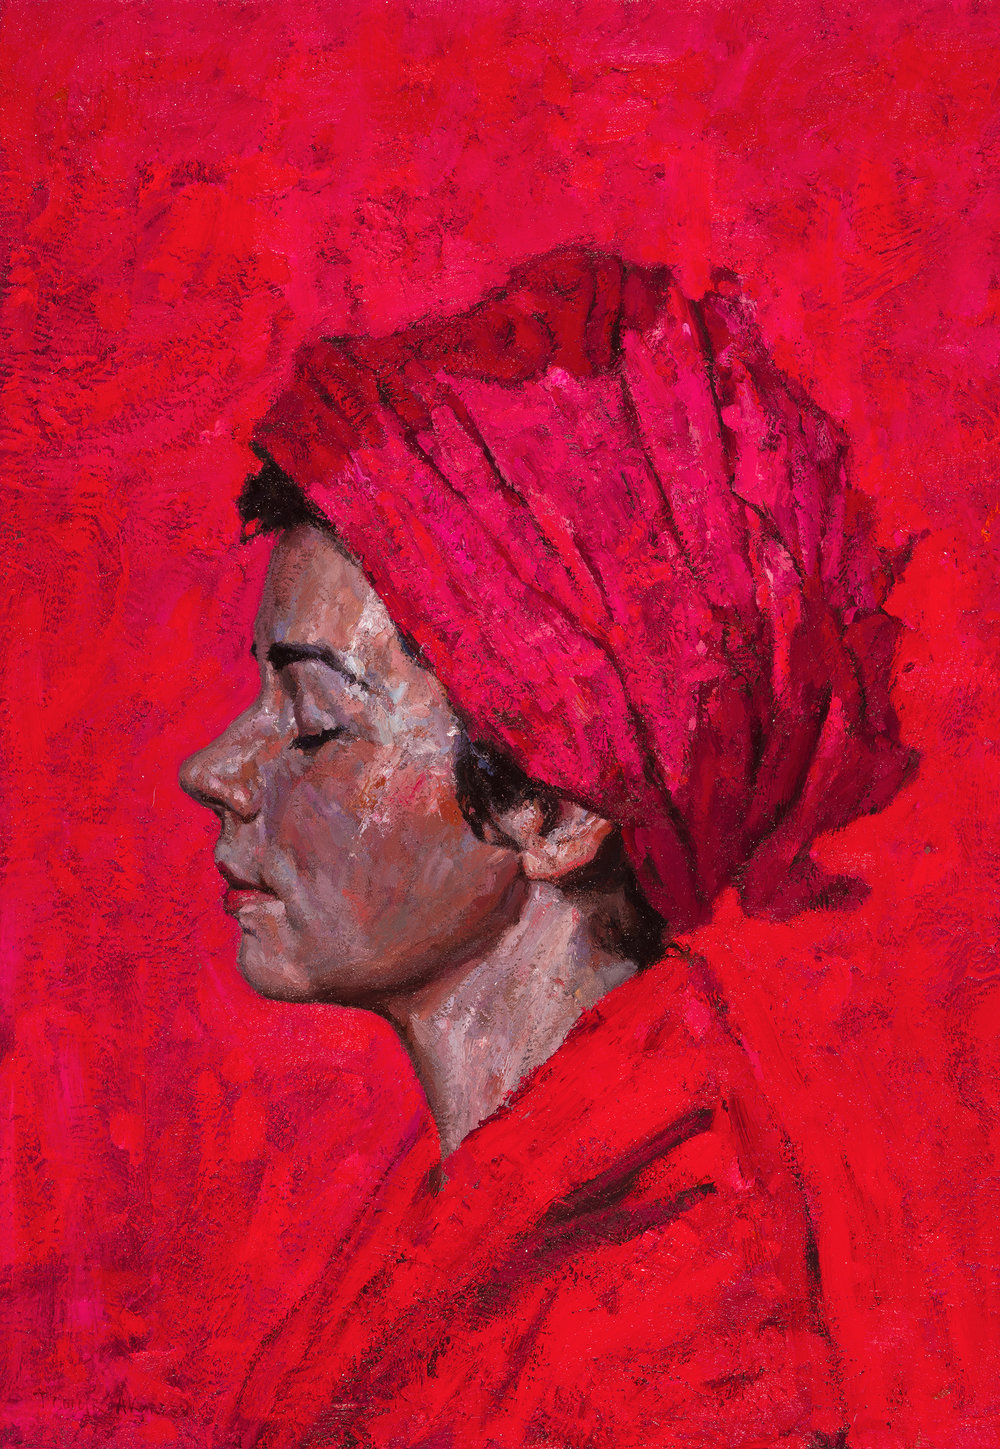 """Timur Akhriev Title: Red on Red Size: 14"""" x 20"""" Oil on Linen  Sold, Through Paul & Scott Gallery"""